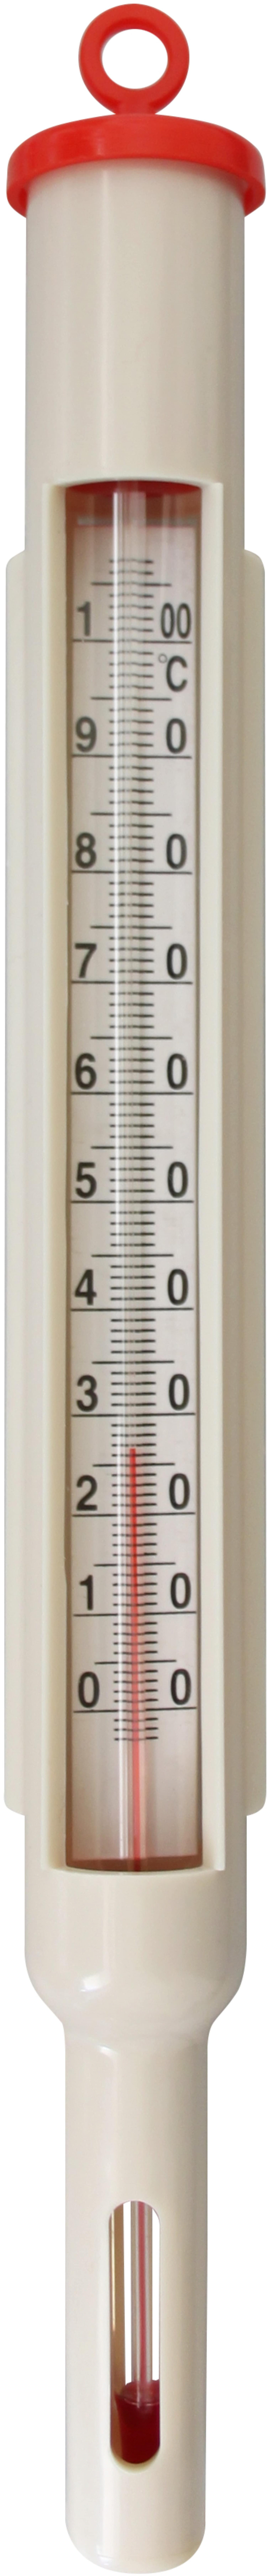 Thermometer 160012